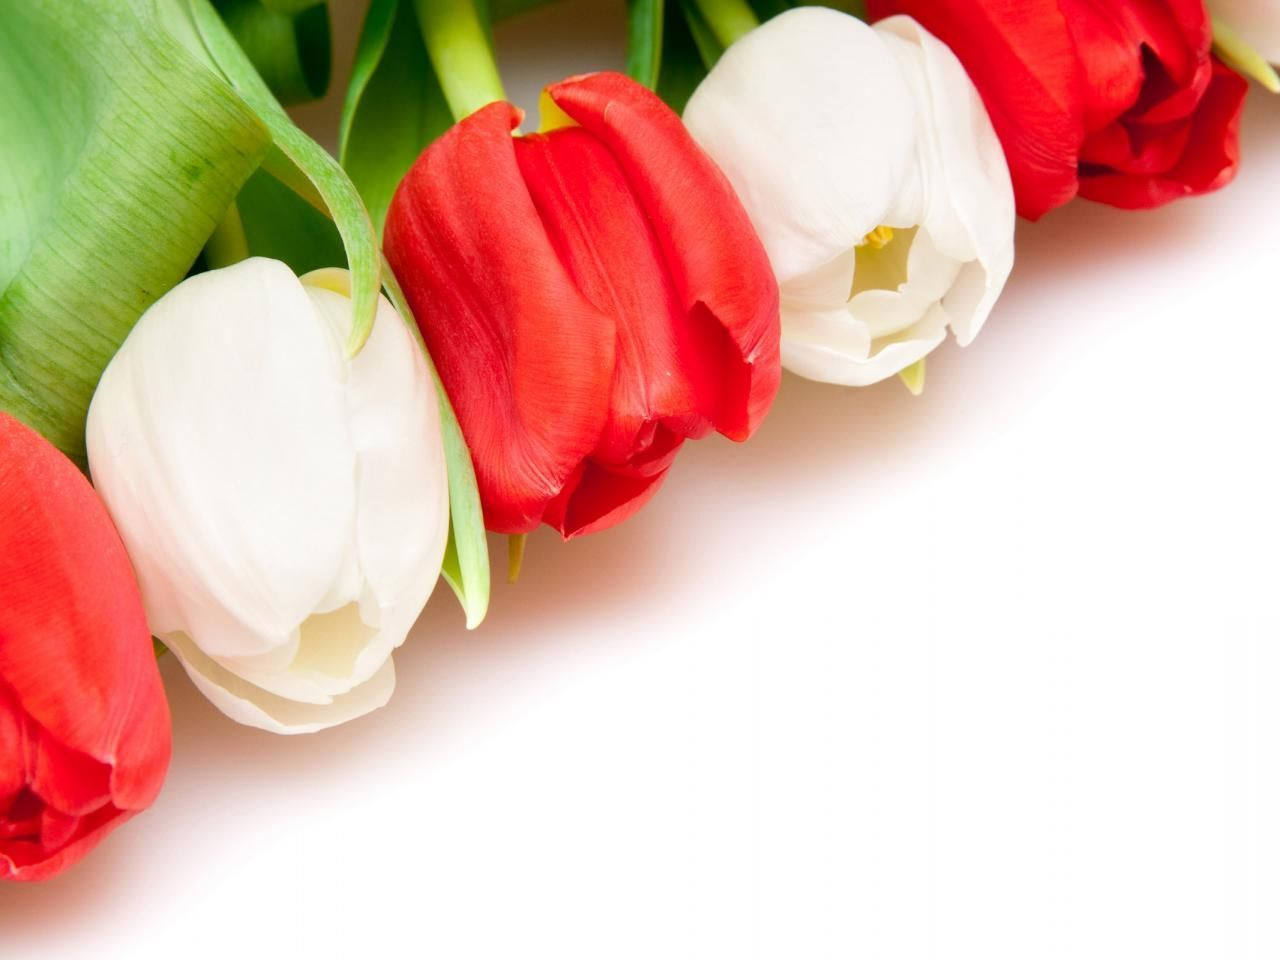 Flower wallpapers with white background flowers pinterest red and white tulip growing tulips wallpapers and images dhlflorist Image collections